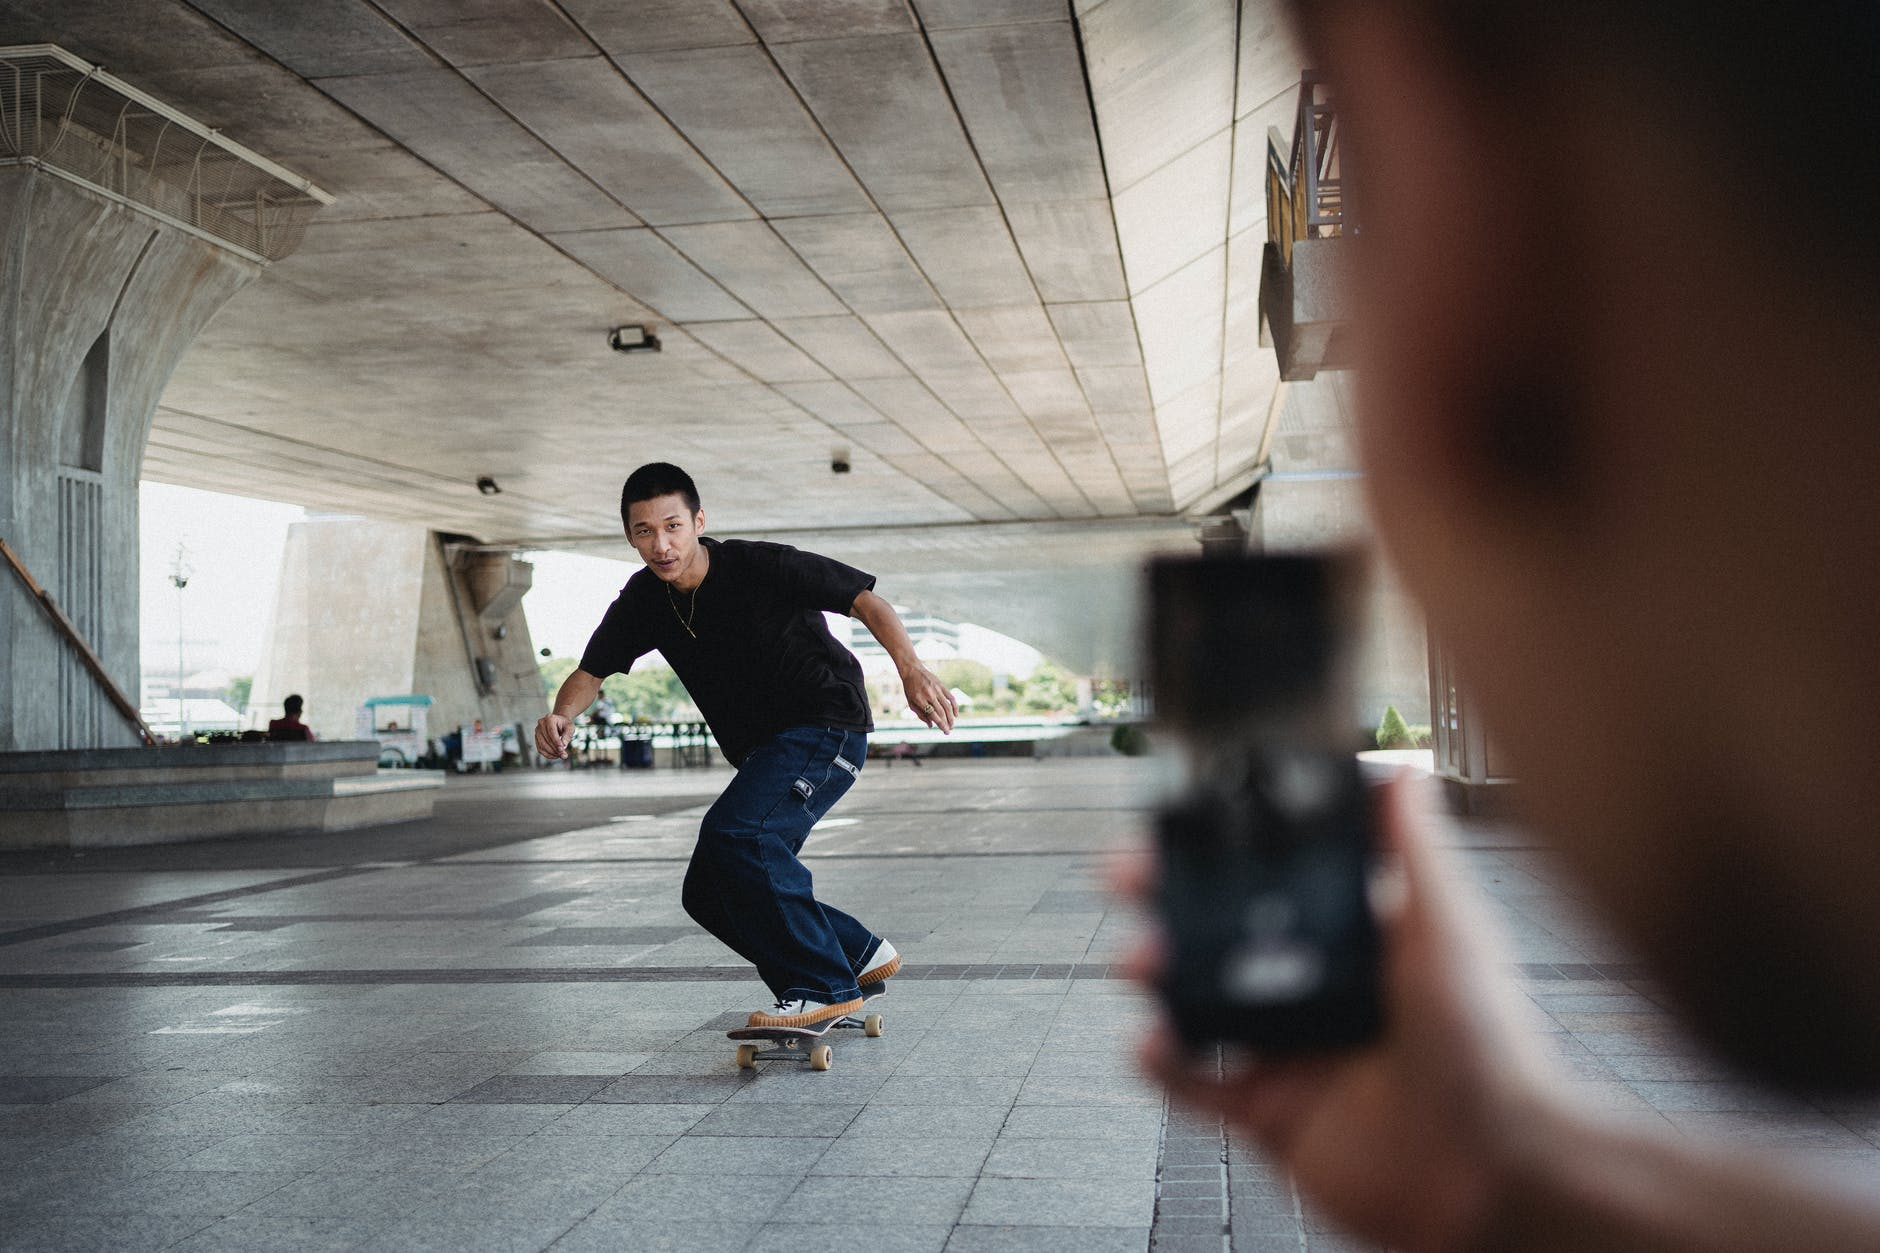 crop person taking photo of skateboarder